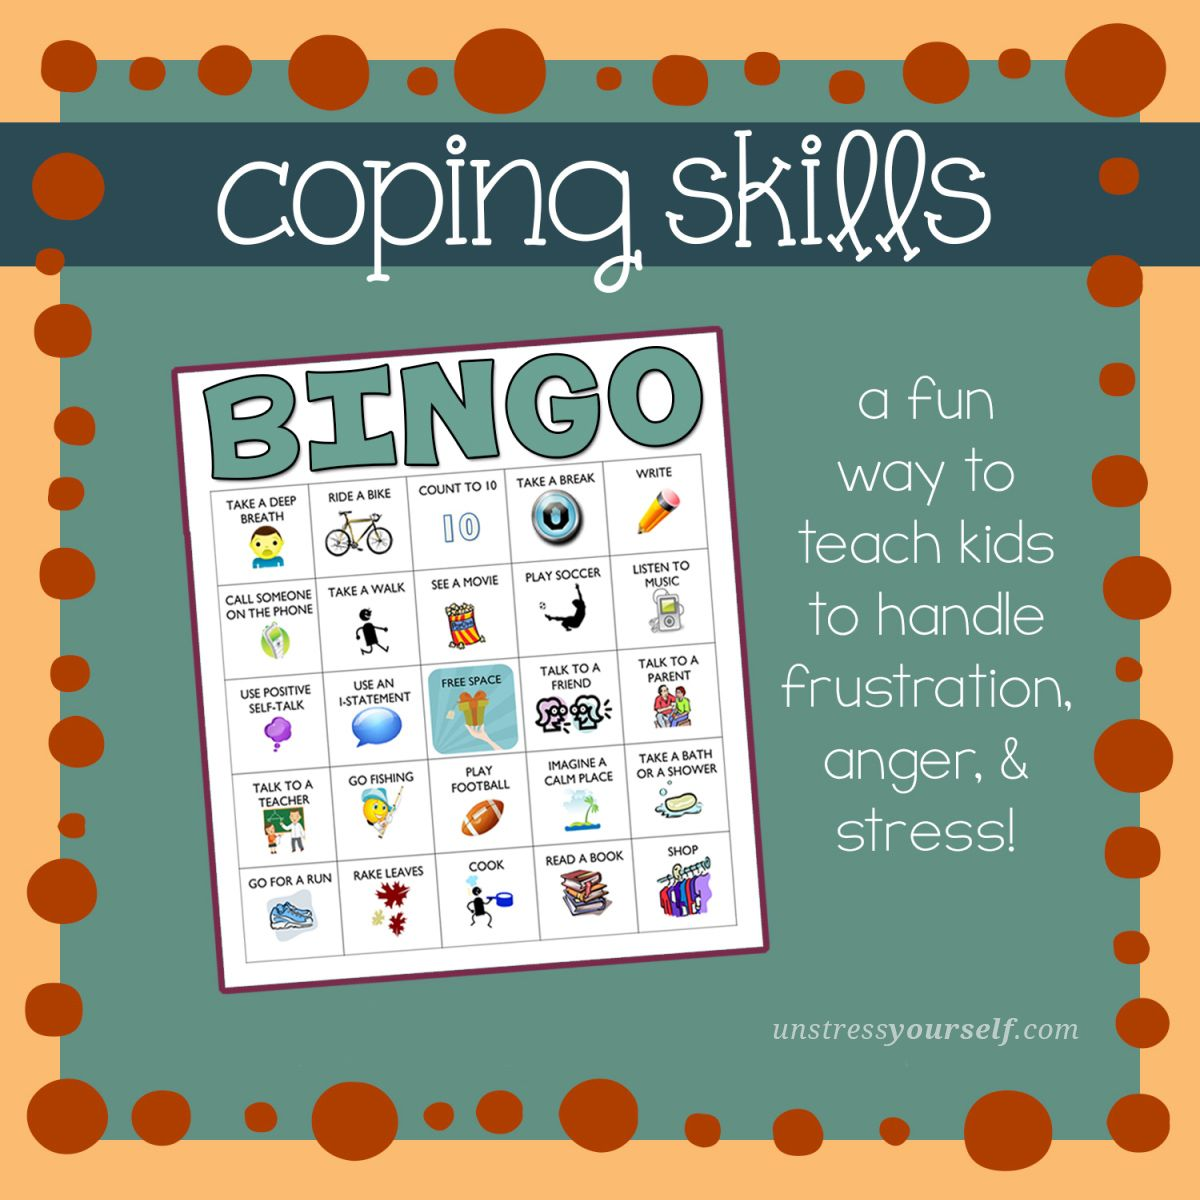 Discover The Top Seven Coping Skills Worksheets Designed